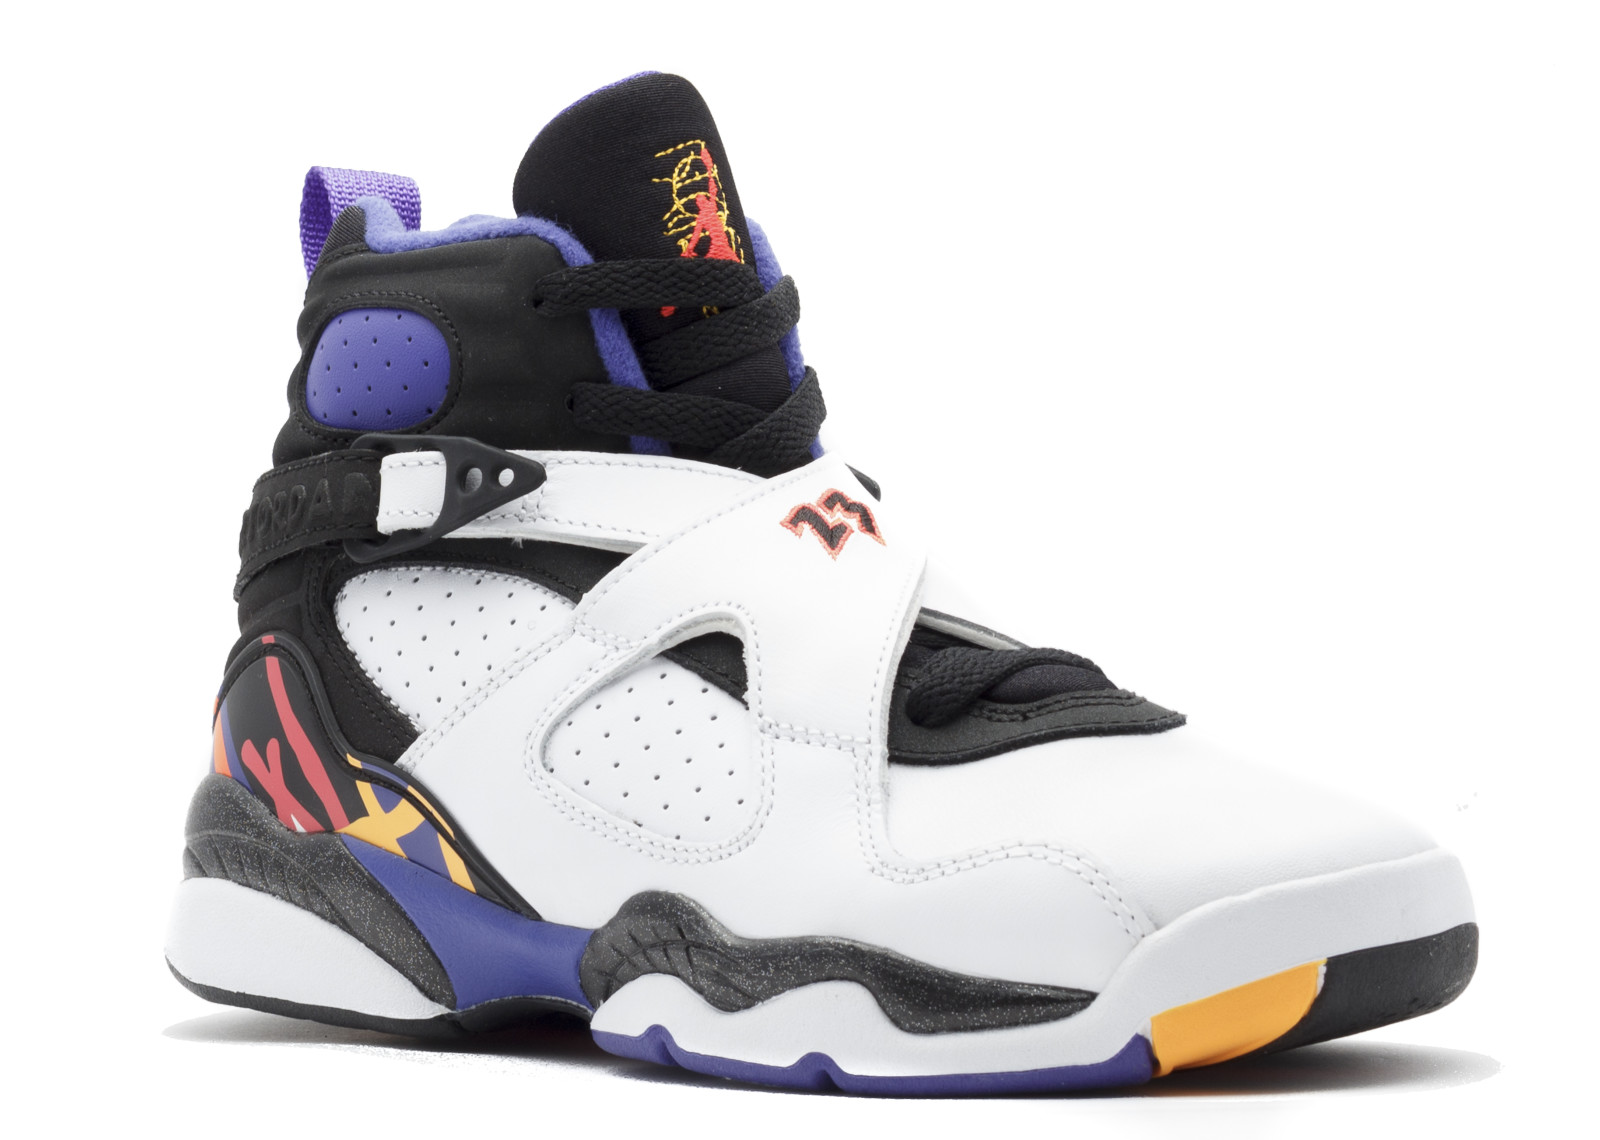 Air Jordan - Unisex - Air Jordan 8 Retro Bg (Gs)  Three-Peat  - 305368-142  - Size 5.5 43a5a7c27